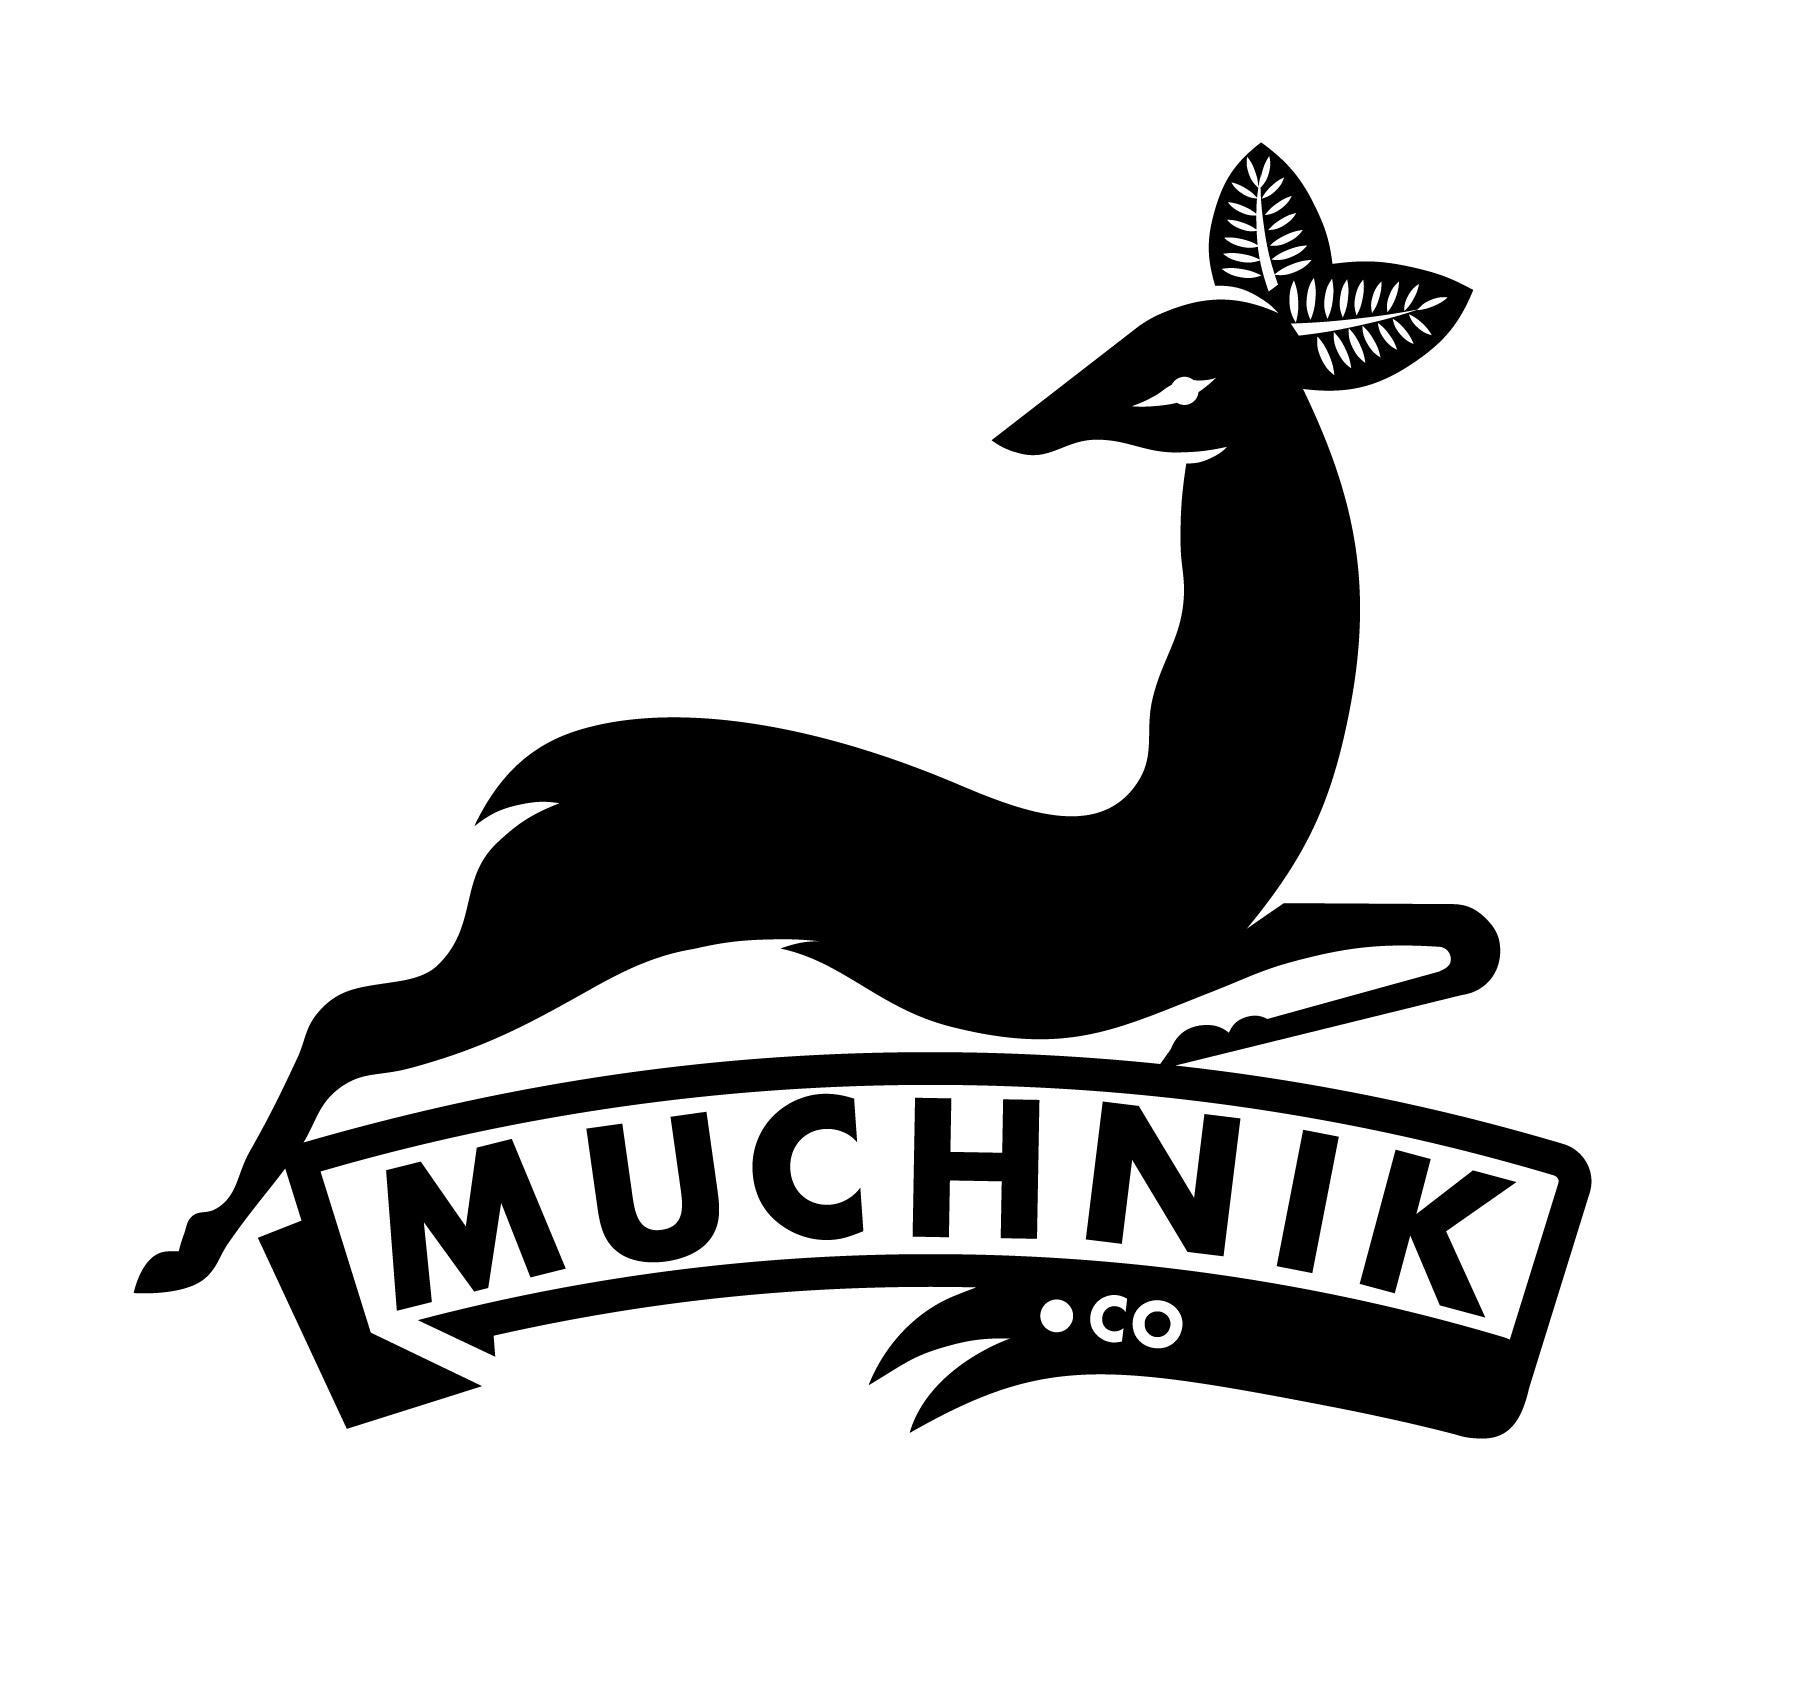 Logo_Muchnik.co